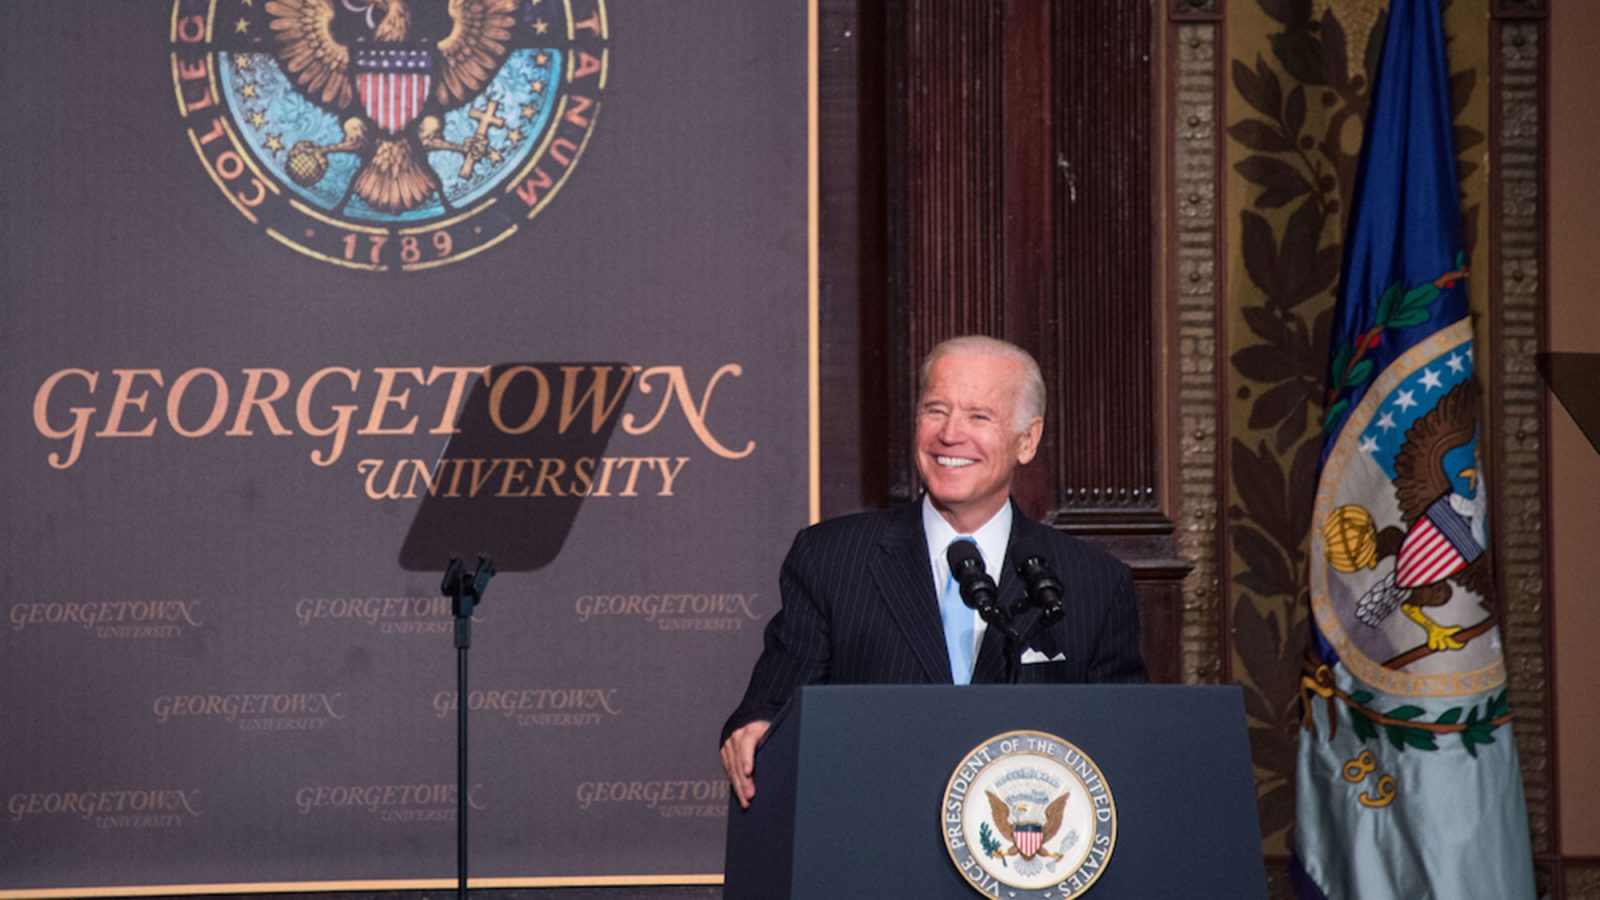 Joe Biden stands on the stage in Gaston Hall behind a lectern with a Georgetown University placard in the background.